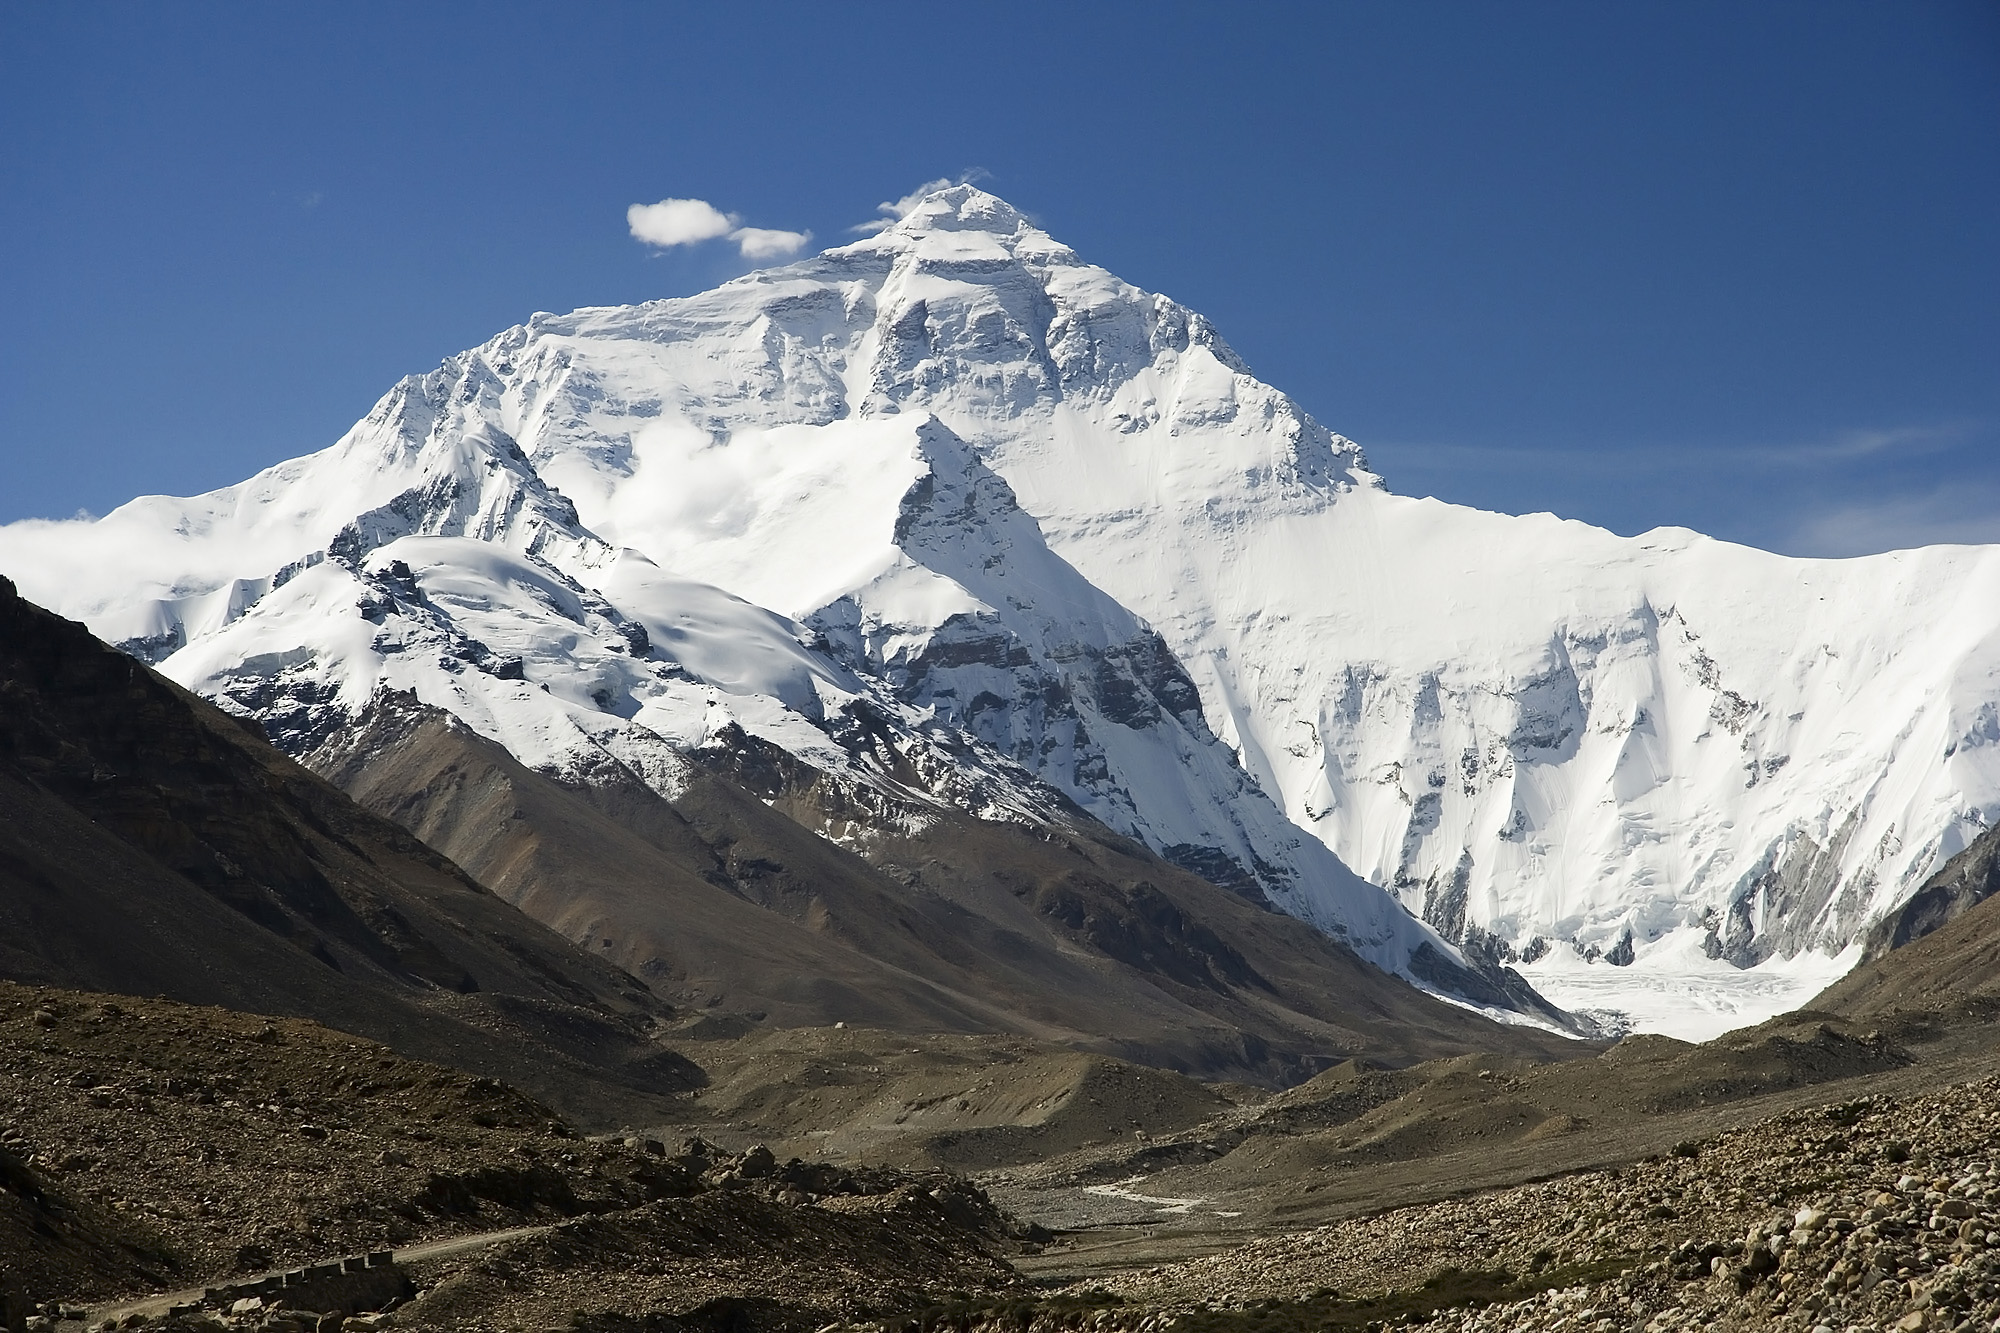 Everest_North_Face_toward_Base_Camp_Tibet_Luca_Galuzzi_2006_edit_1.jpg